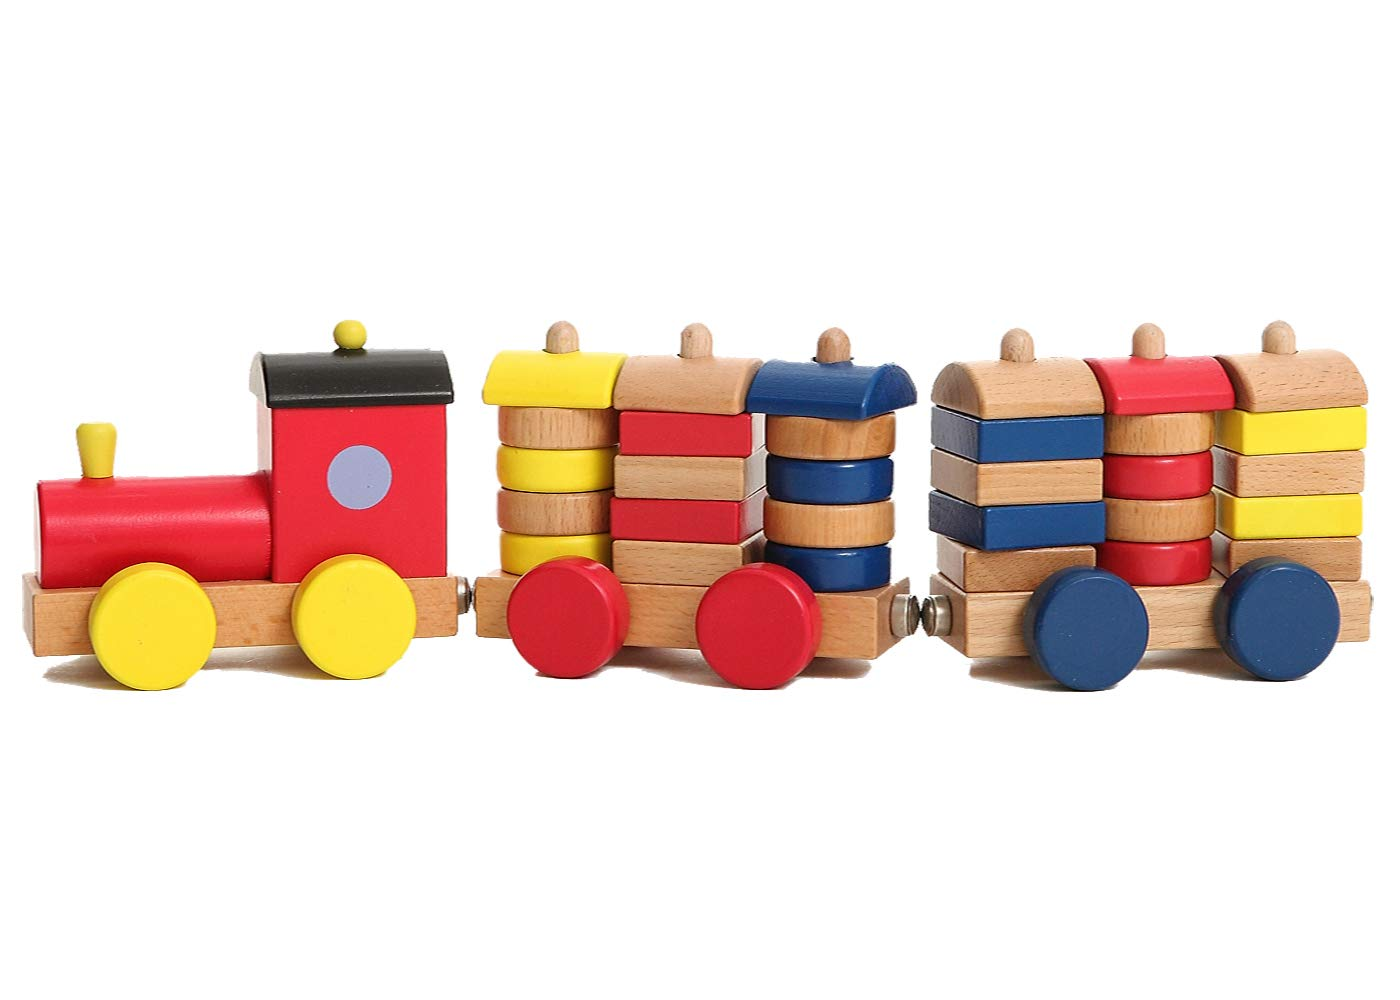 Migargle Wooden Block Train Toys Color &Shape Pull Train Toy Kids Baby Toddlers 3 Years Building Blocks Stacking Games Shape Recognition Learning Education (30pcs Blocks)